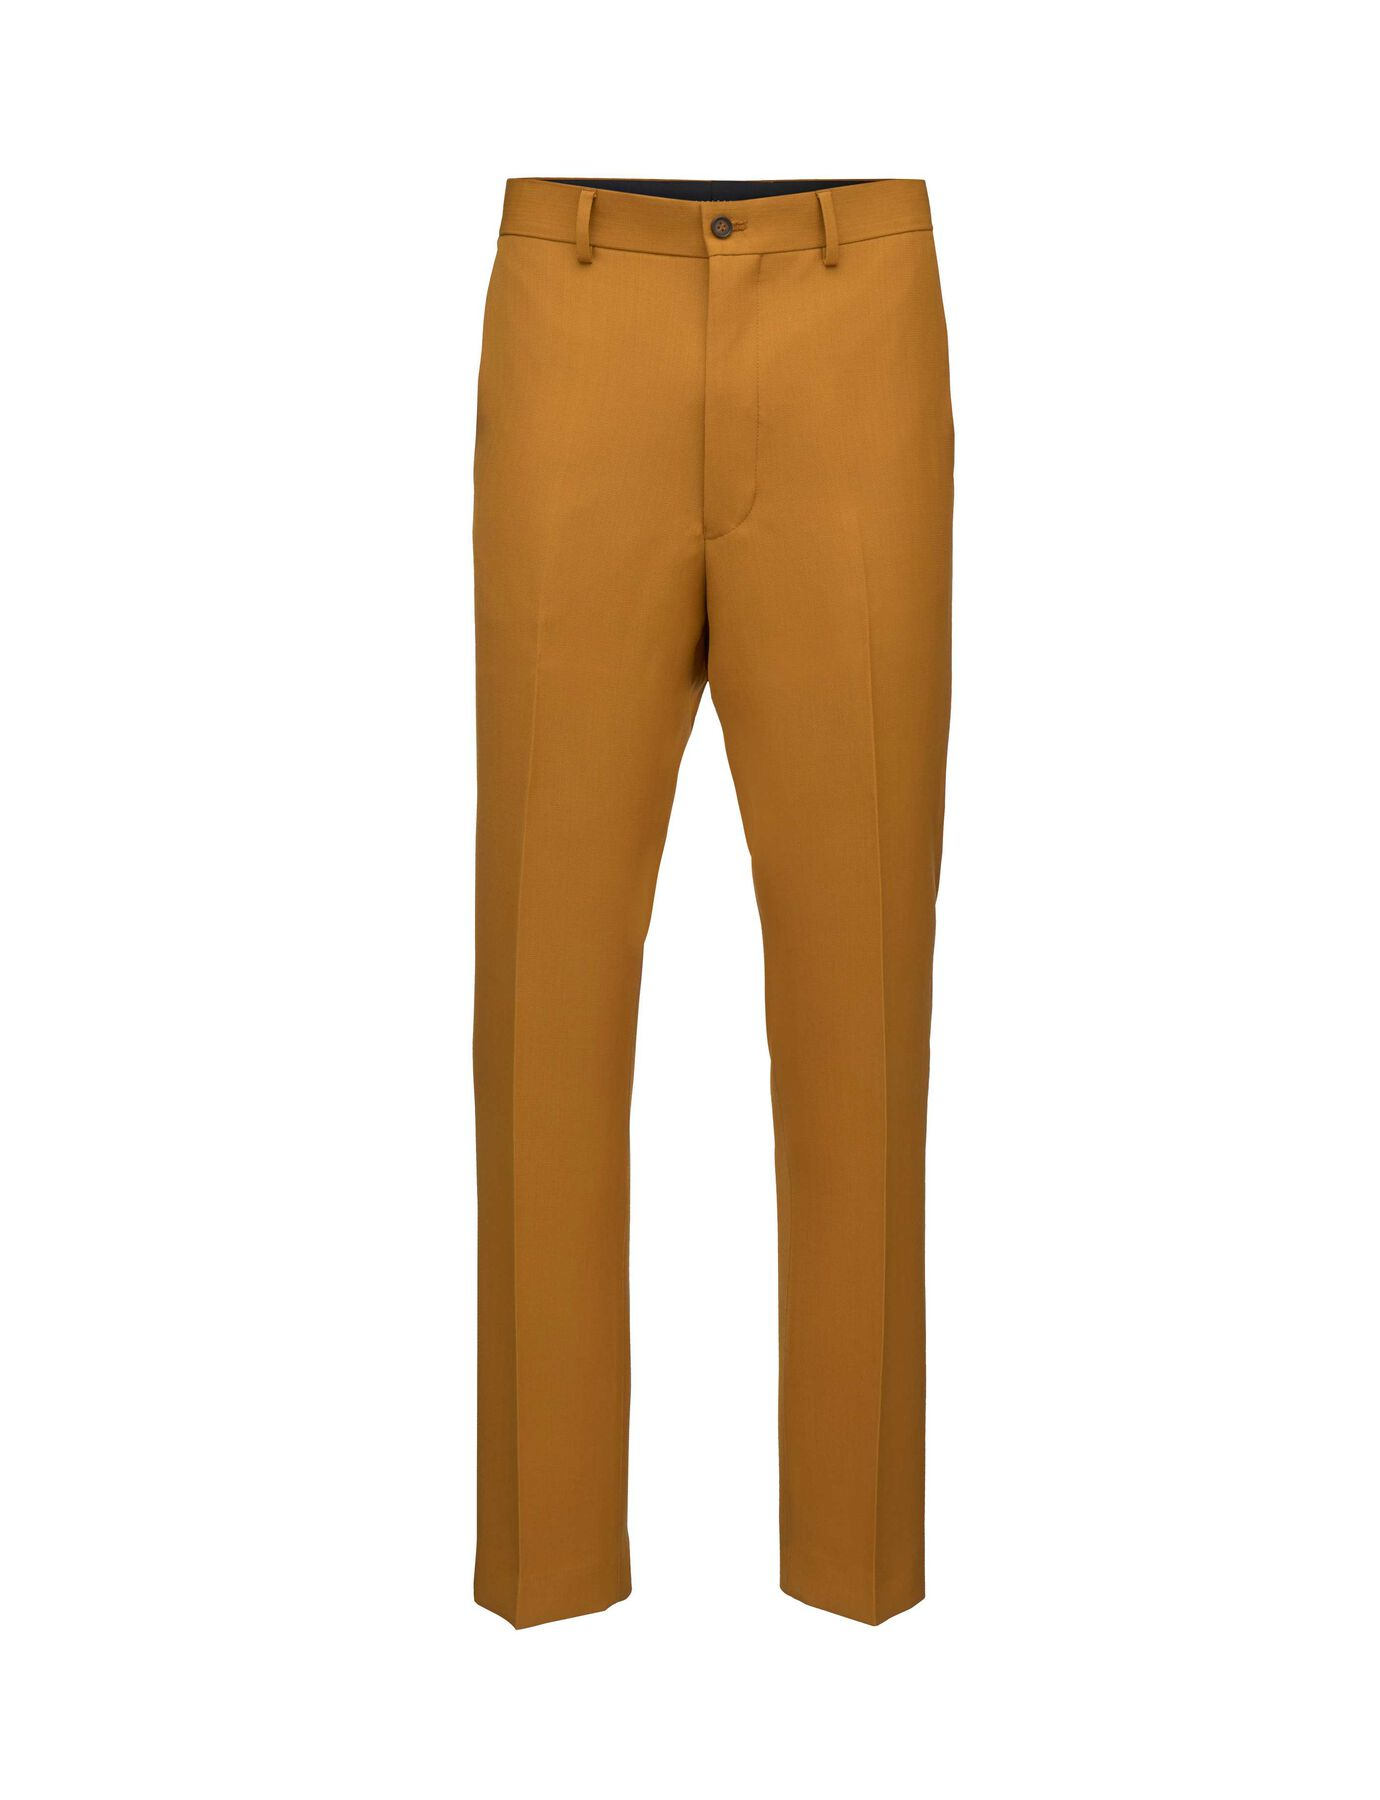 TYLIER TROUSERS in Super Lemon from Tiger of Sweden